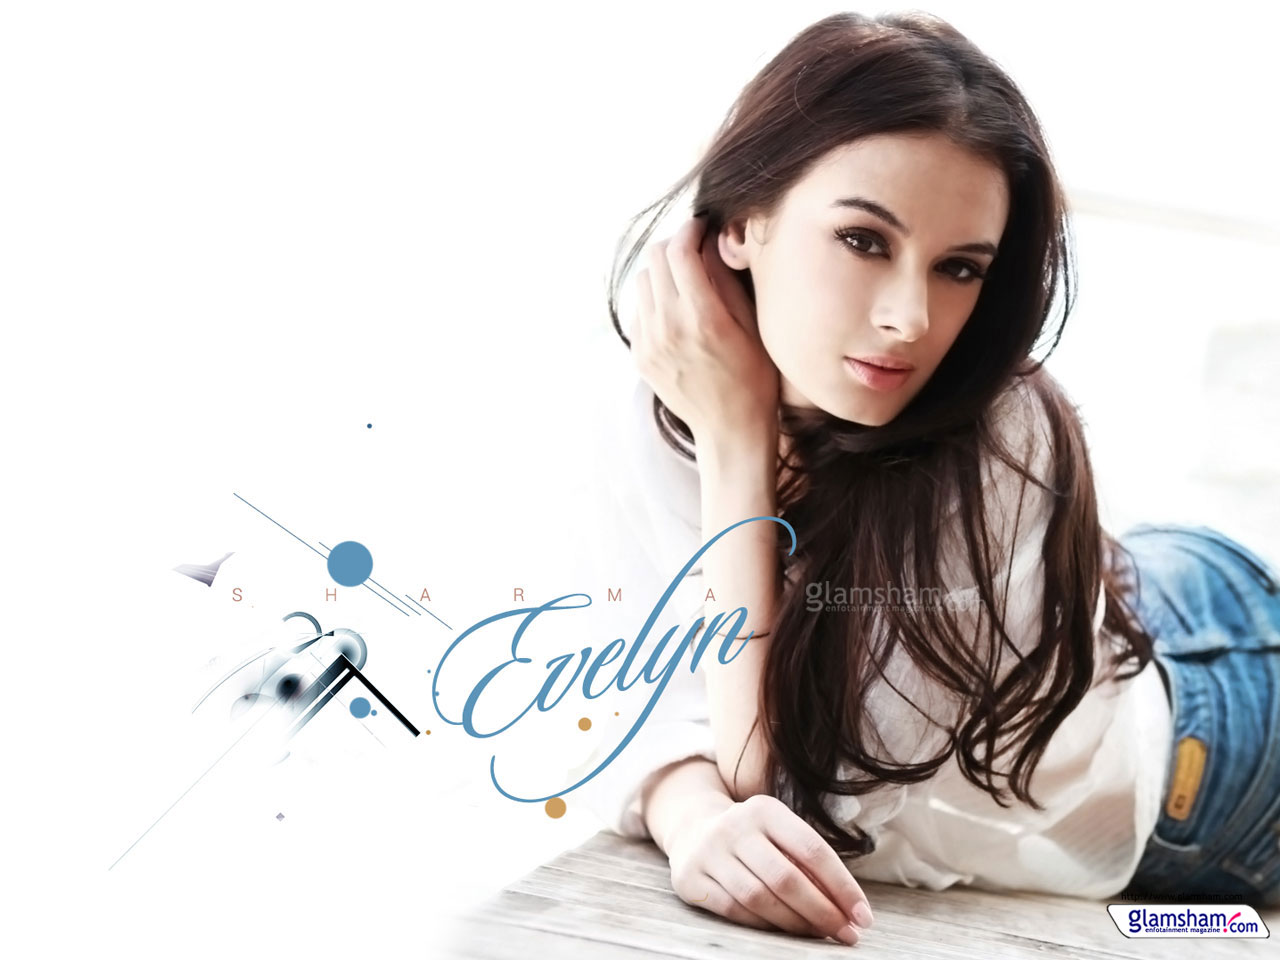 1280x960 - Evelyn Sharma Wallpapers 2